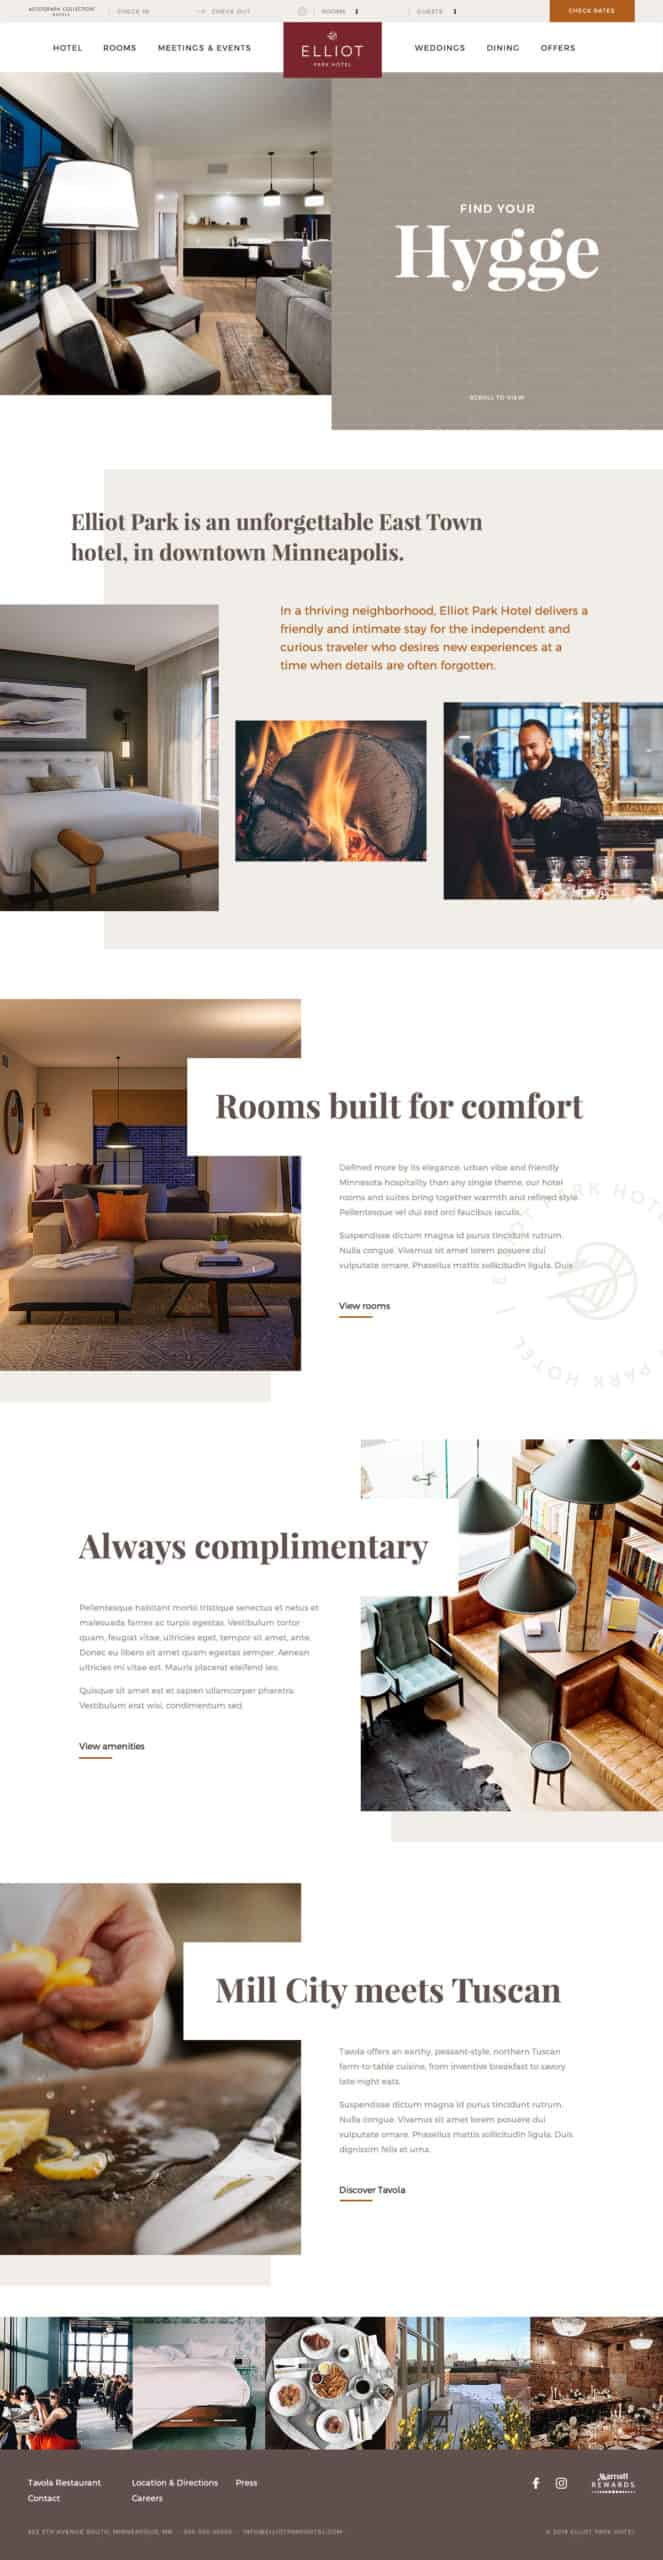 Screenshot of the Elliot Park Hotel Homepage